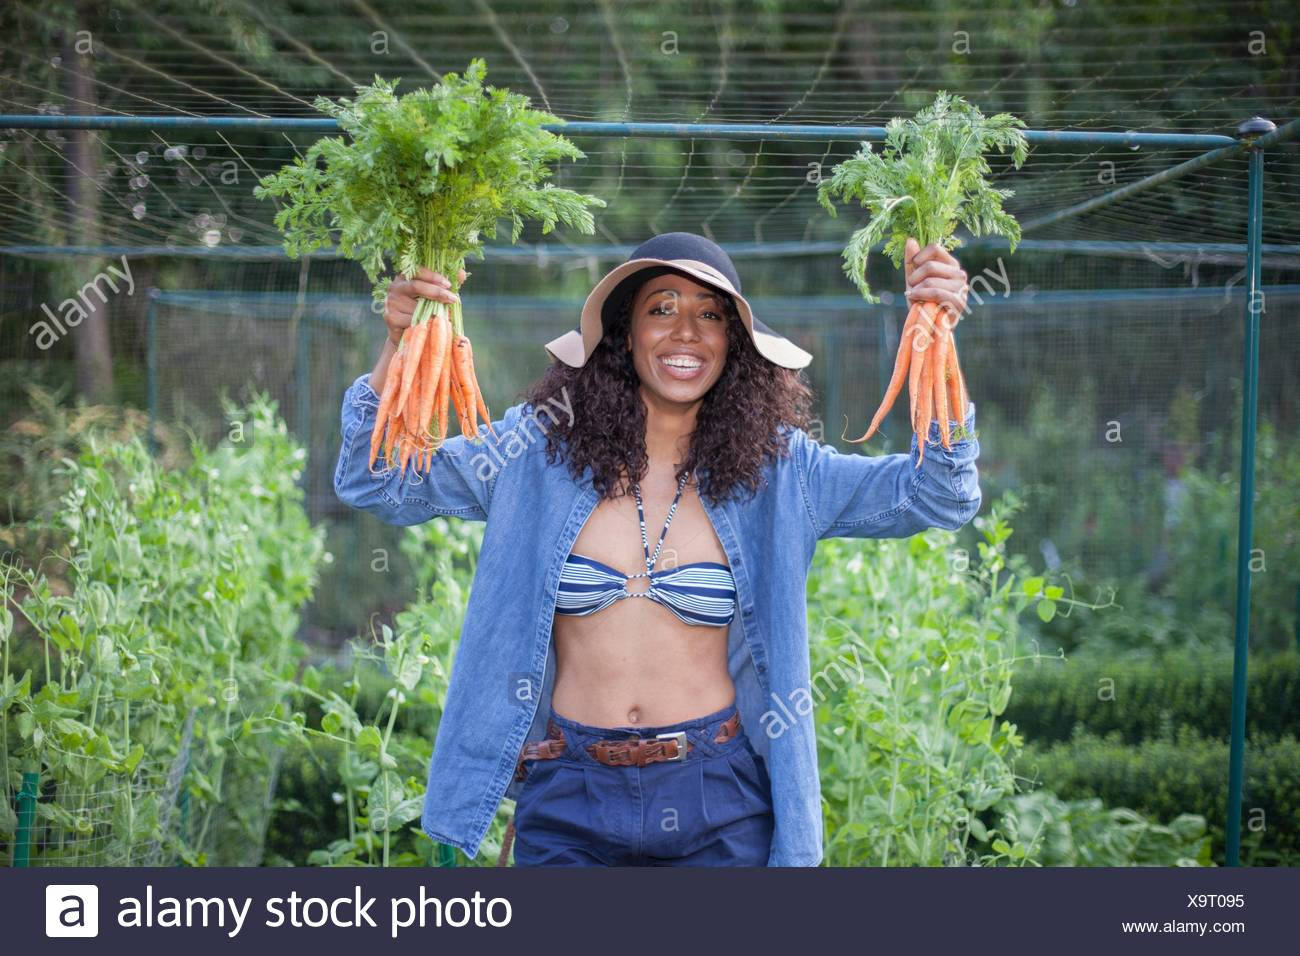 Woman holding up carrots from allotment - Stock Image